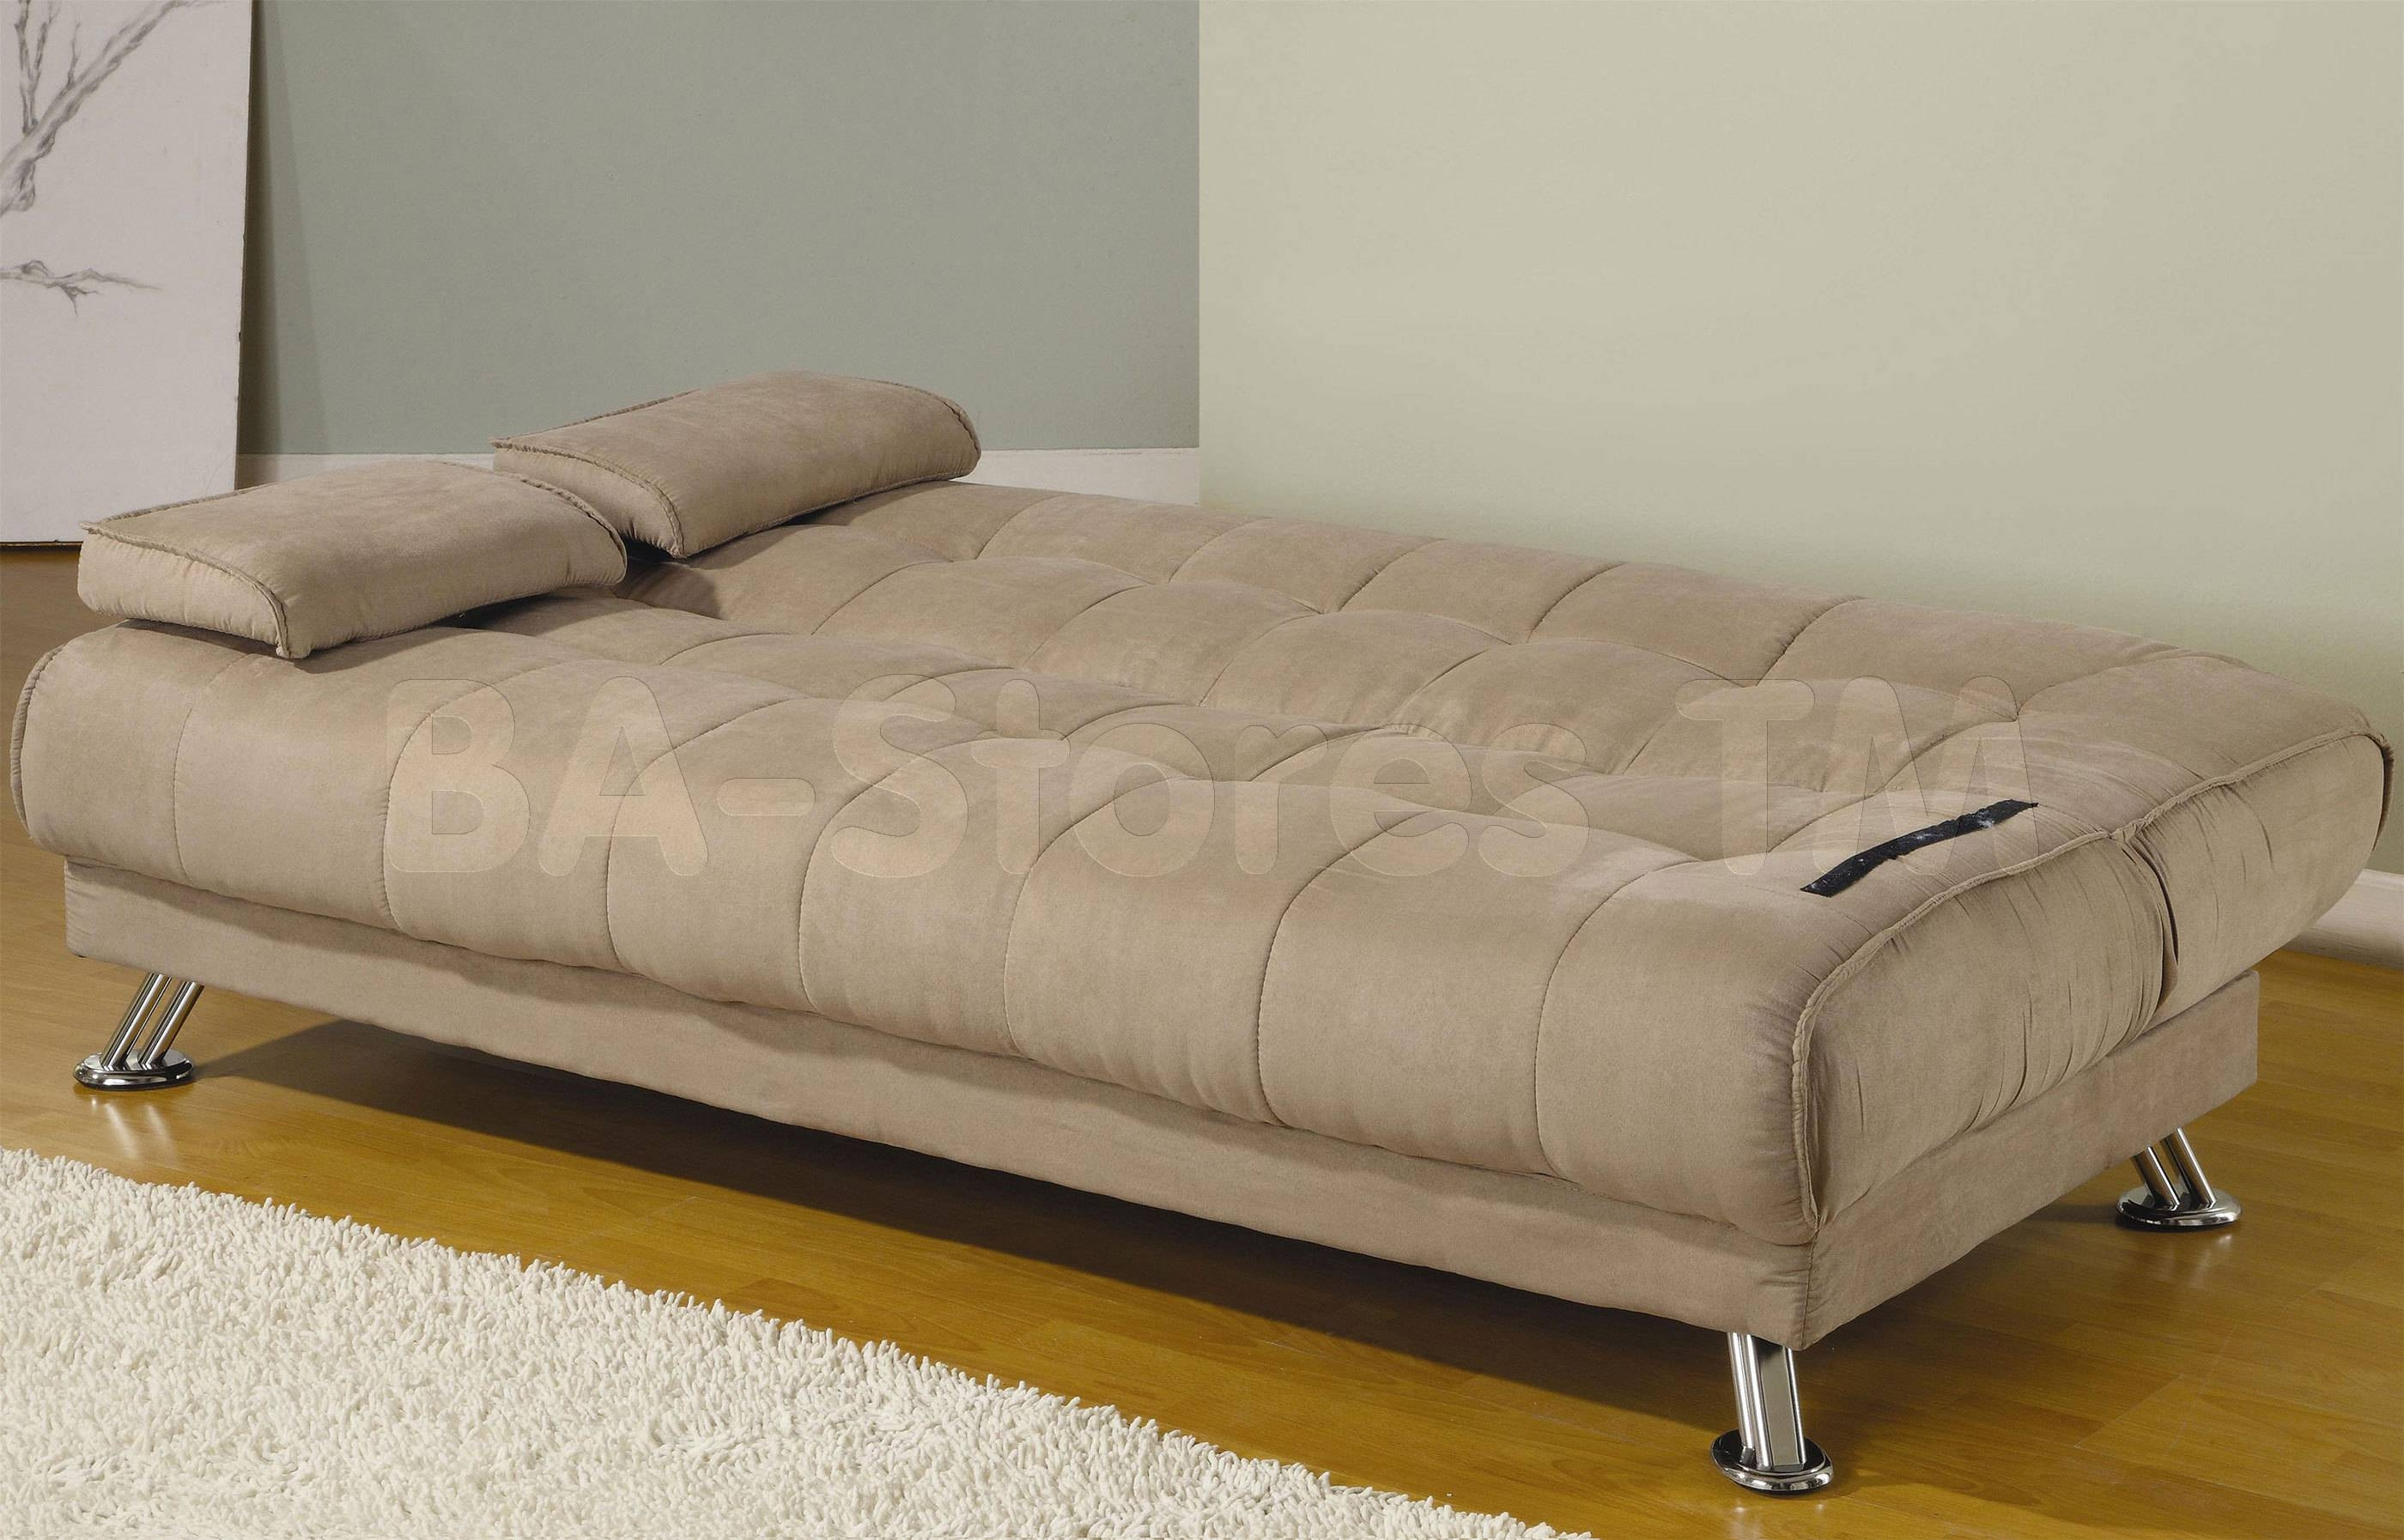 Sofas: Striking Cheap Sofa Sleepers For Small Living Spaces Intended For Sofa Sleepers Queen Size (View 26 of 30)